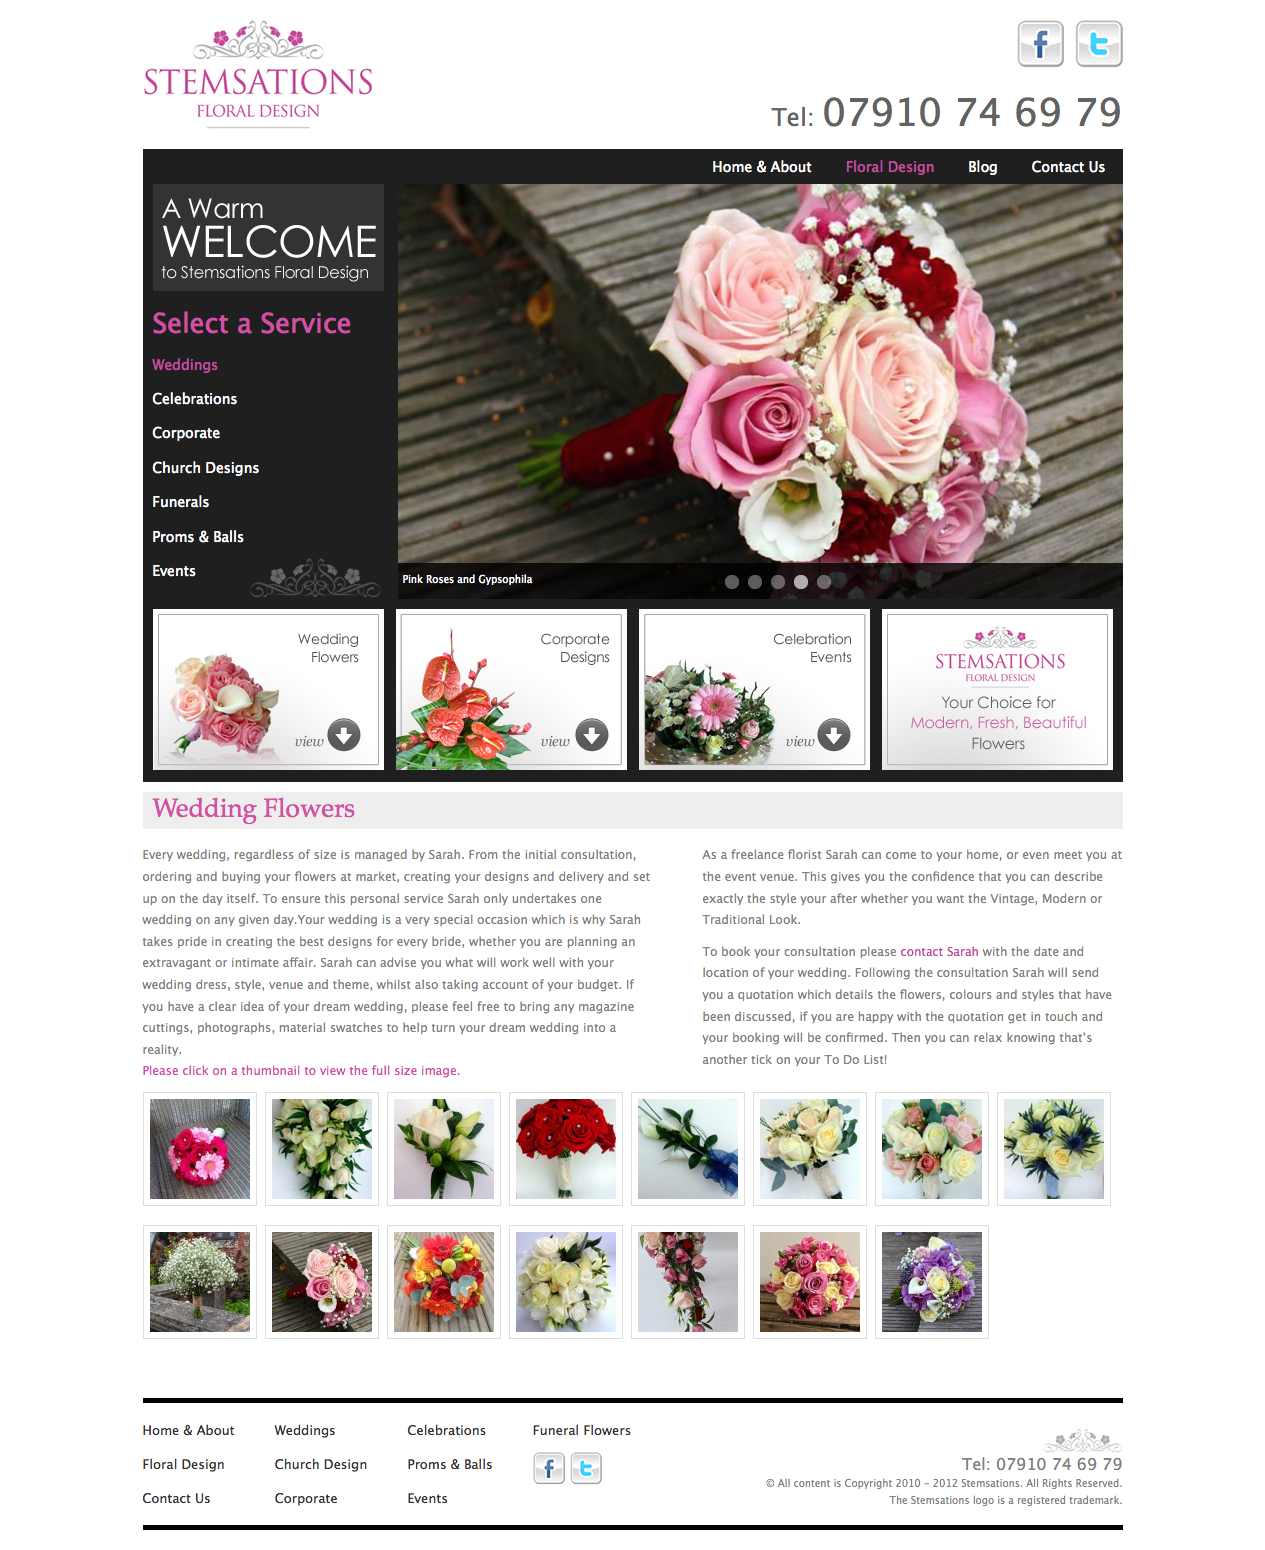 Wedding Flowers Page